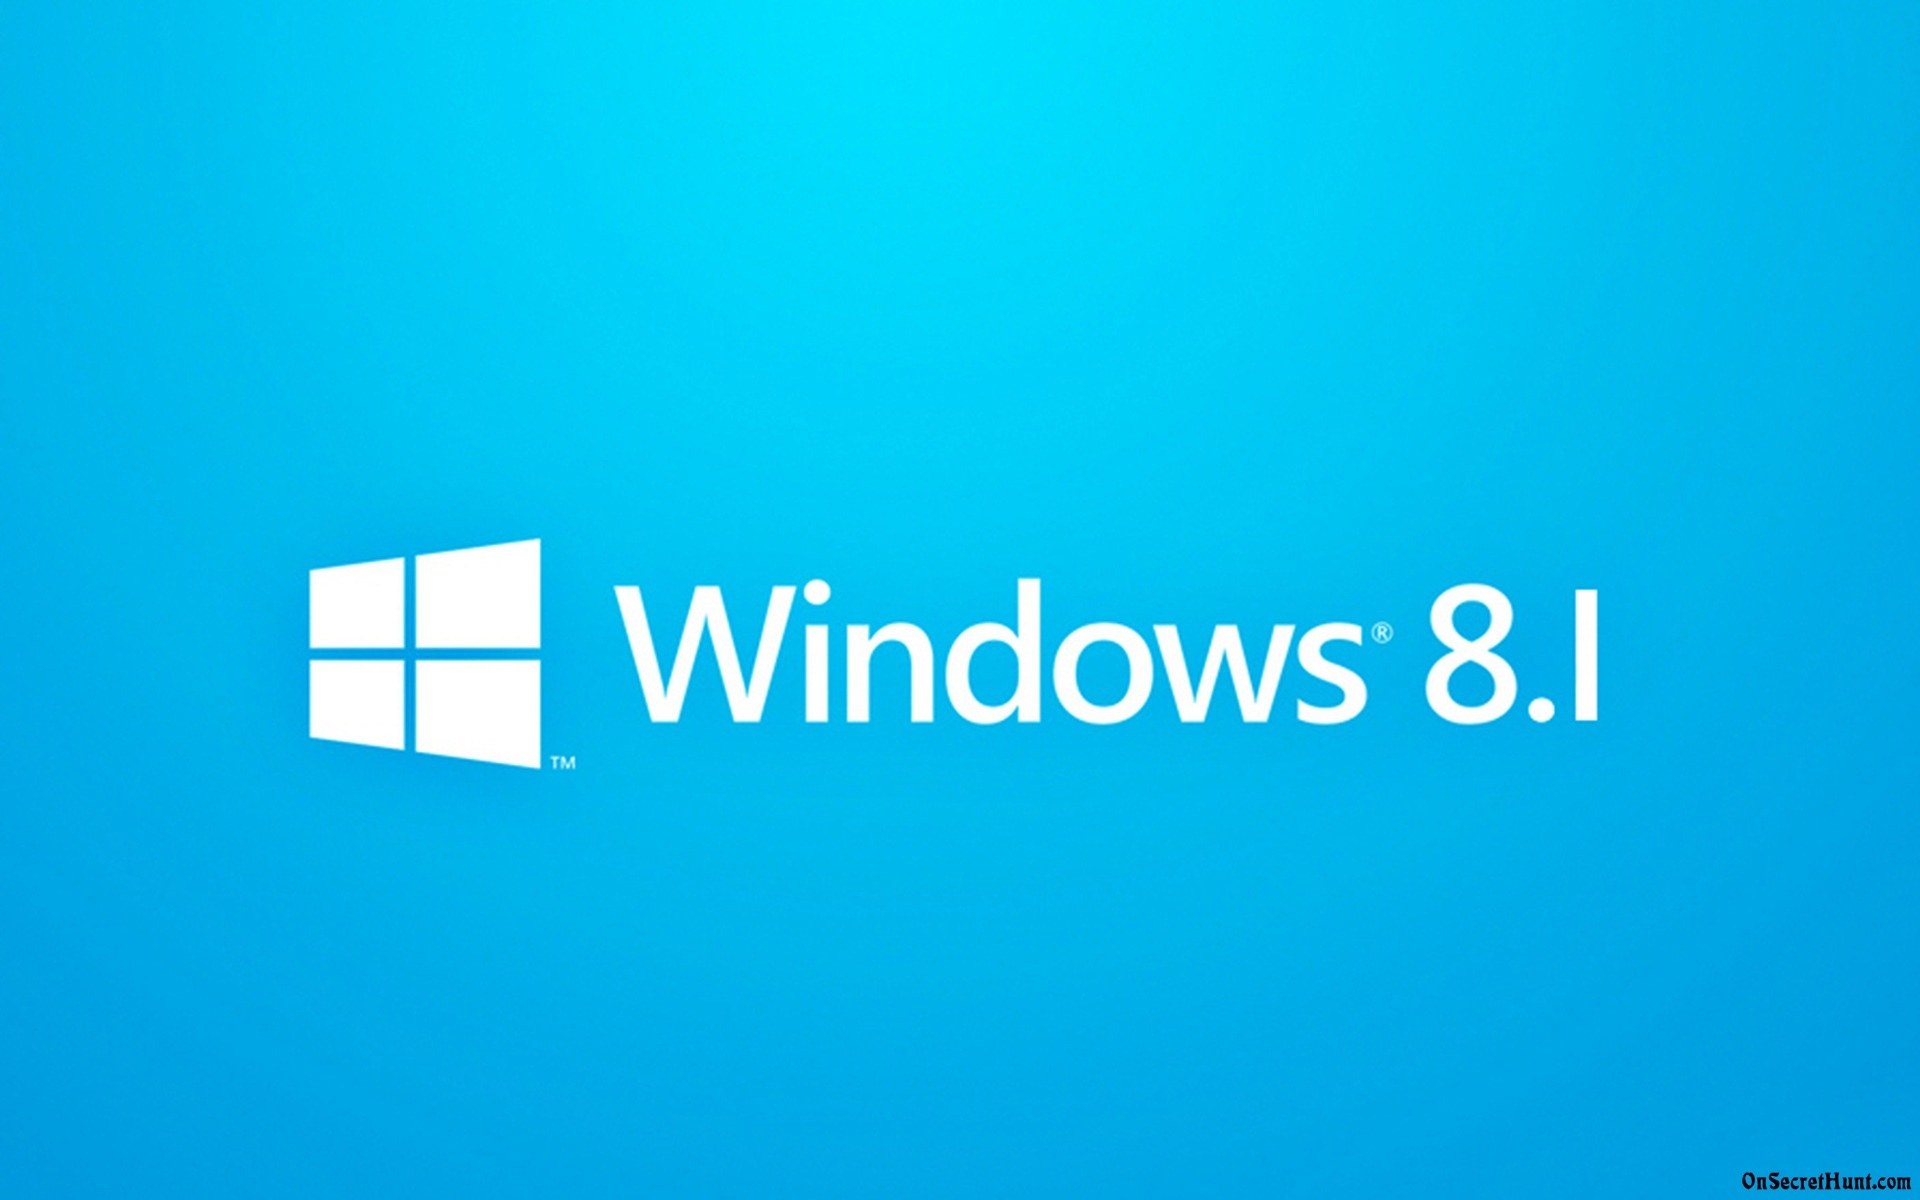 Windows 8 1 wallpapers for desktop wallpapersafari for Window 8 1 wallpaper